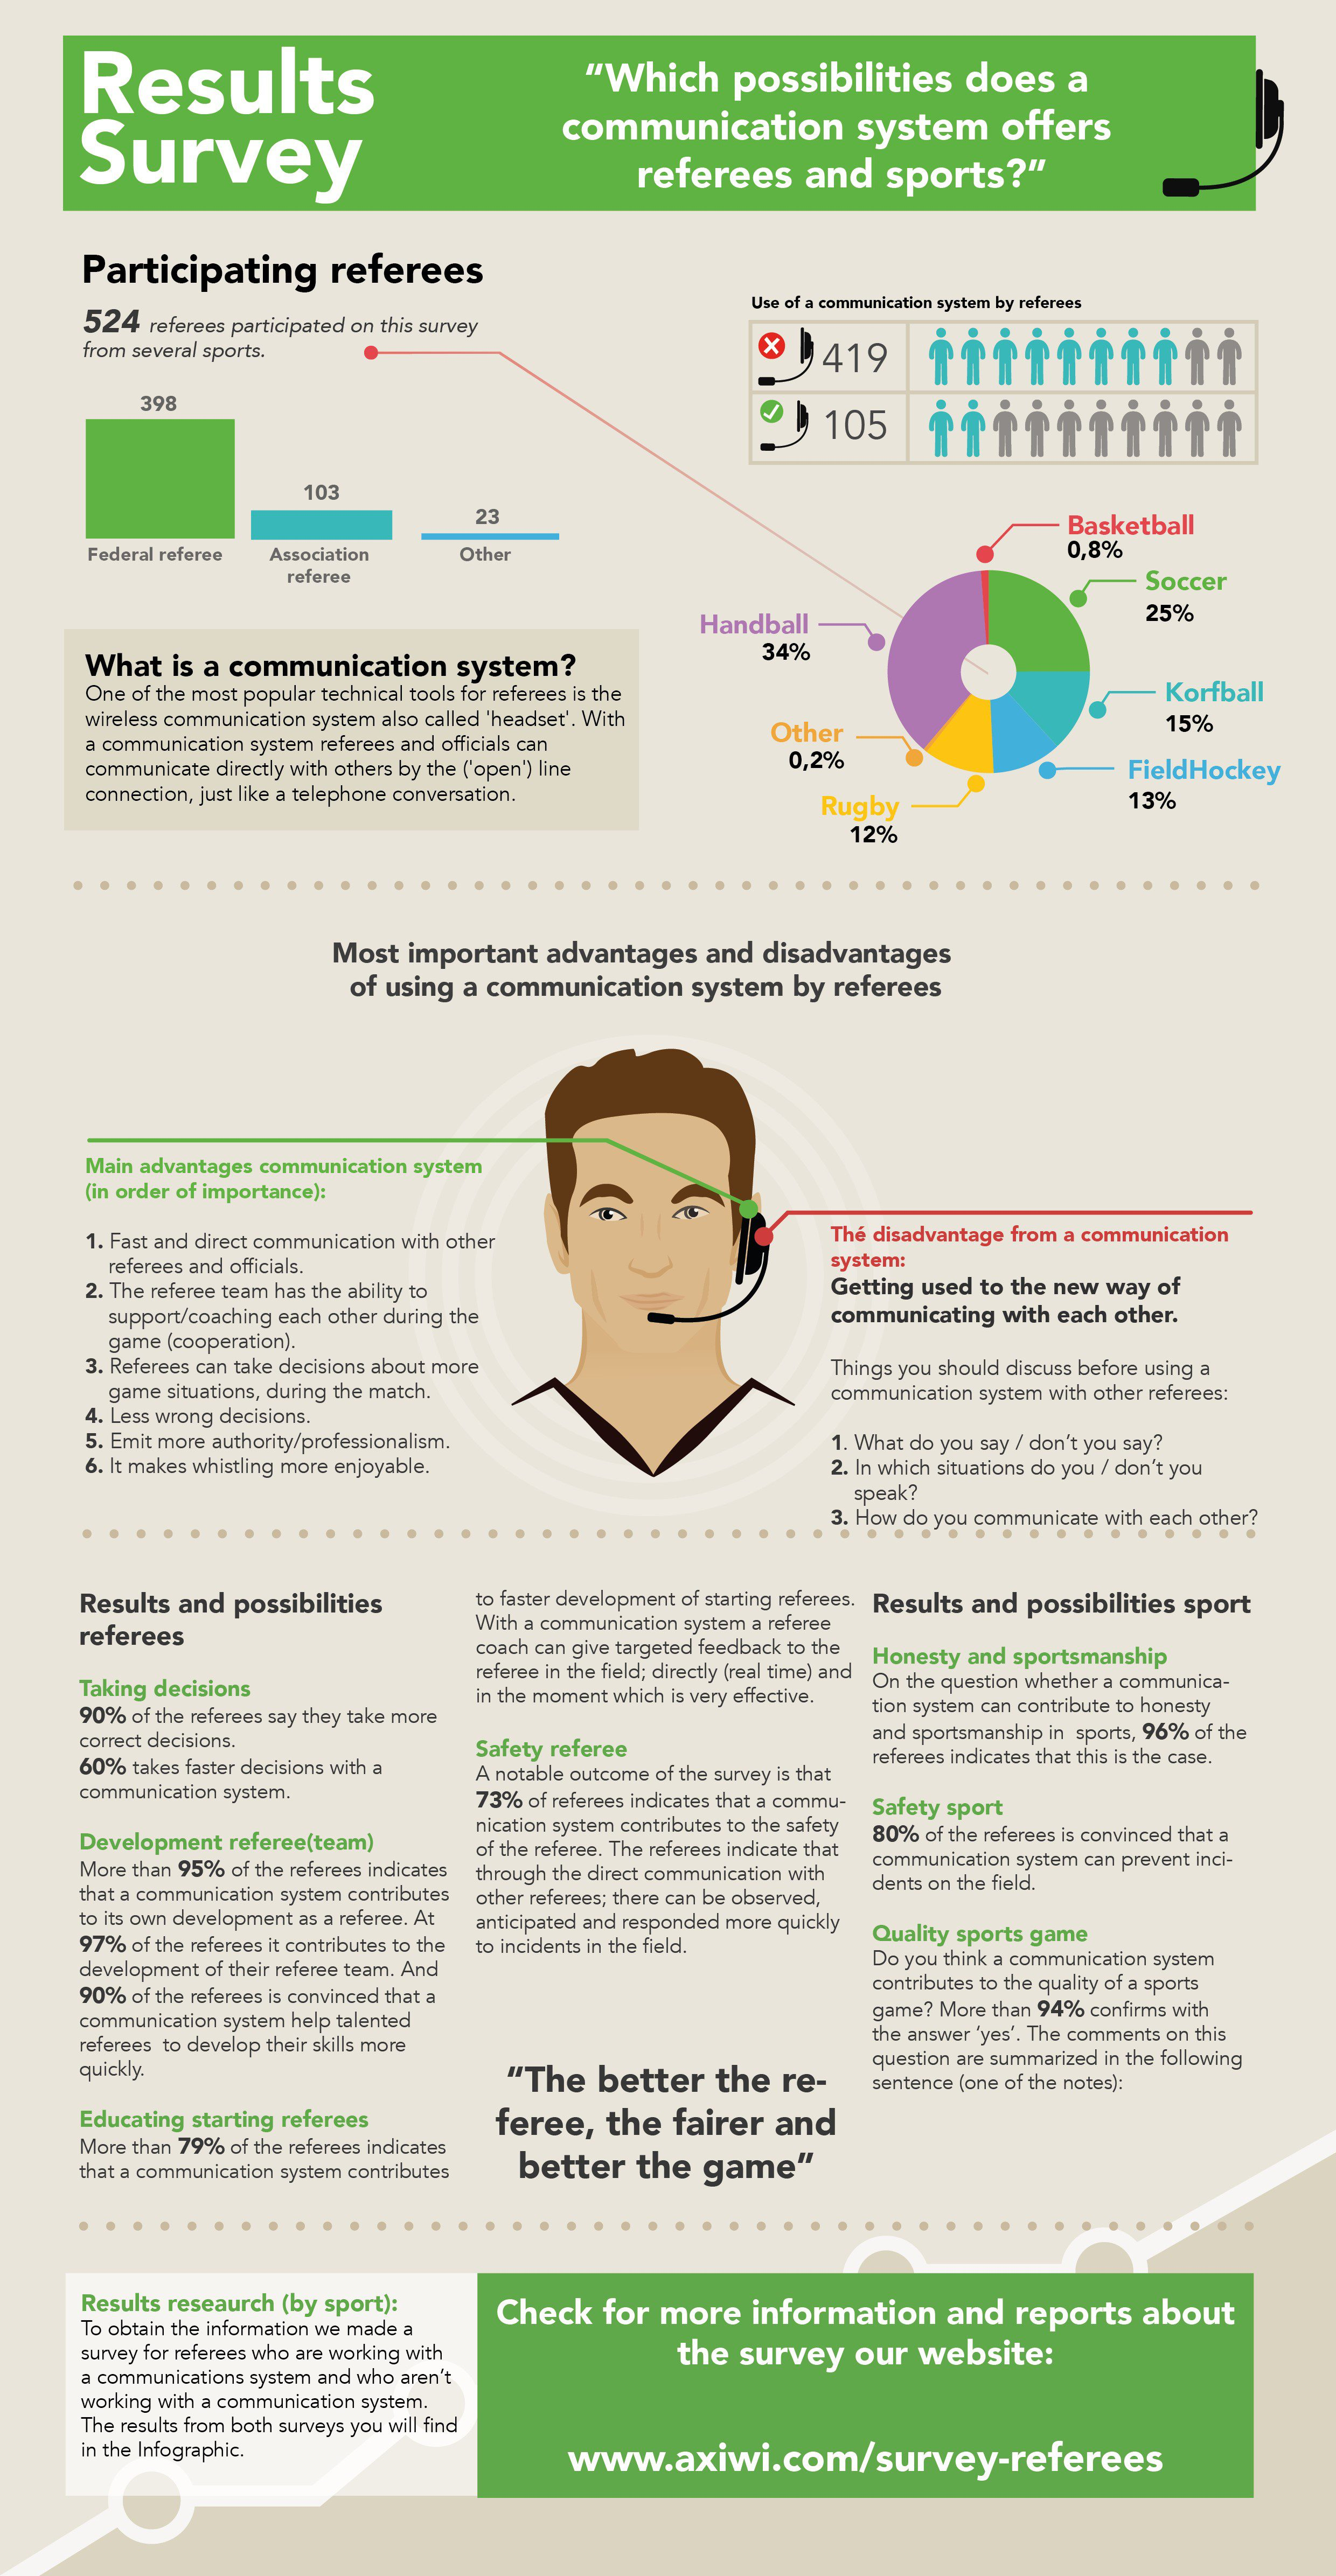 infographic-which-possibilities-does-a-communication-system-offers-referees-and-sports-jpg-kopie